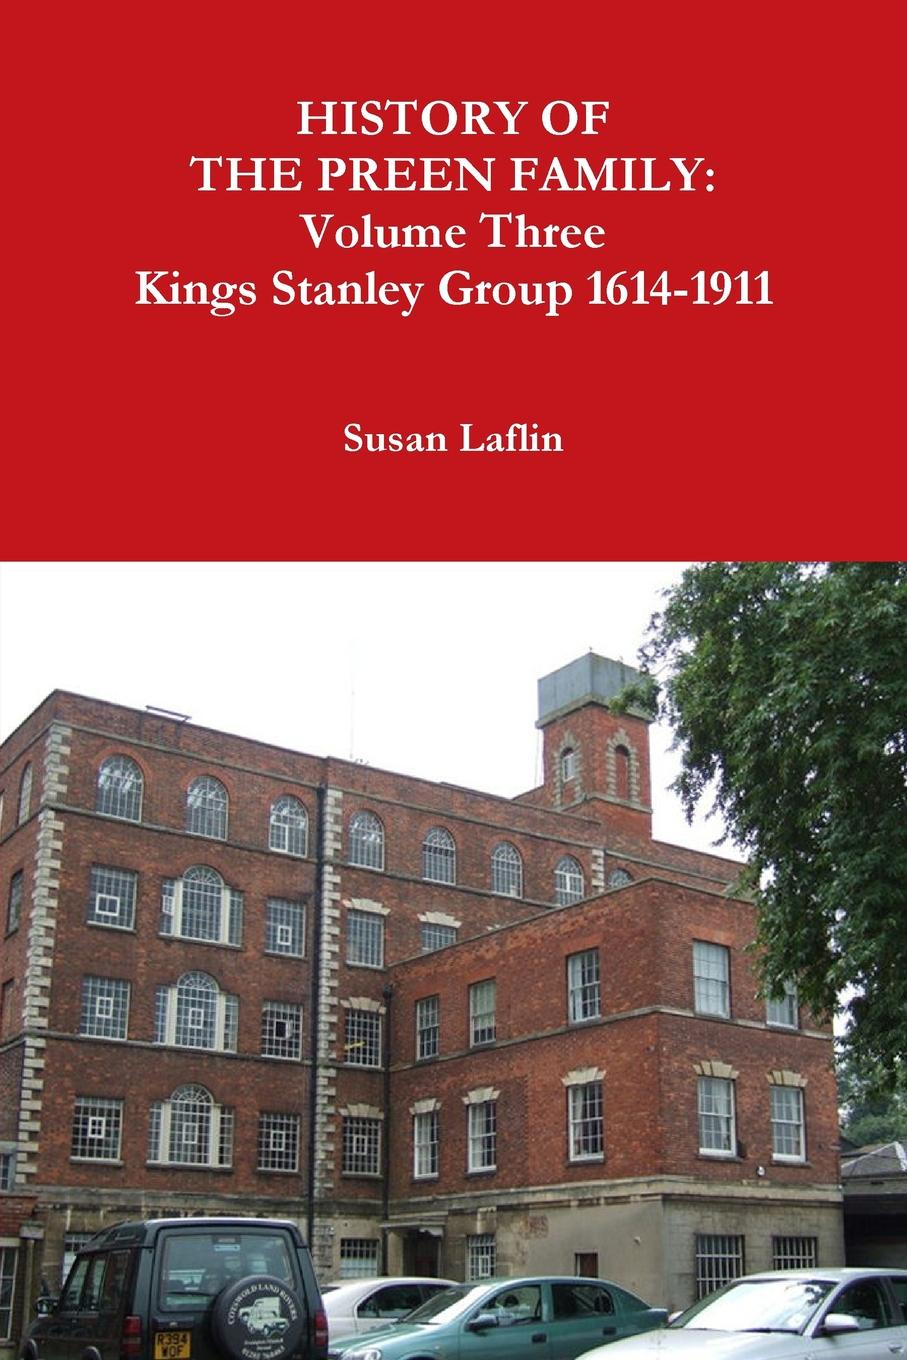 Susan Laflin HISTORY OF THE PREEN FAMILY. Volume Three Kings Stanley Group 1614-1911